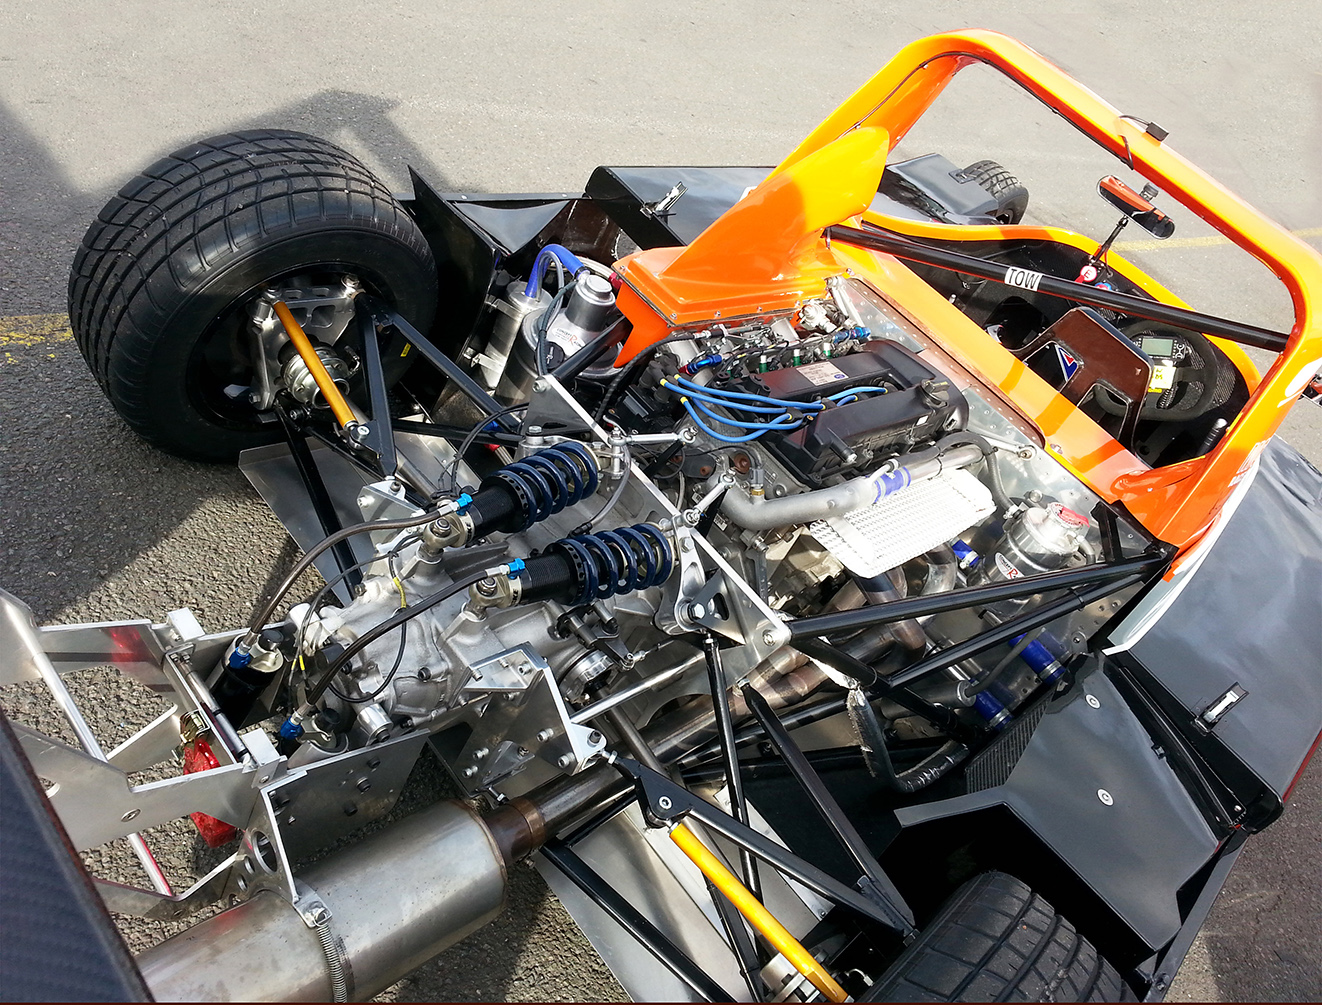 Sports 2000 Championship specification MCR racing car